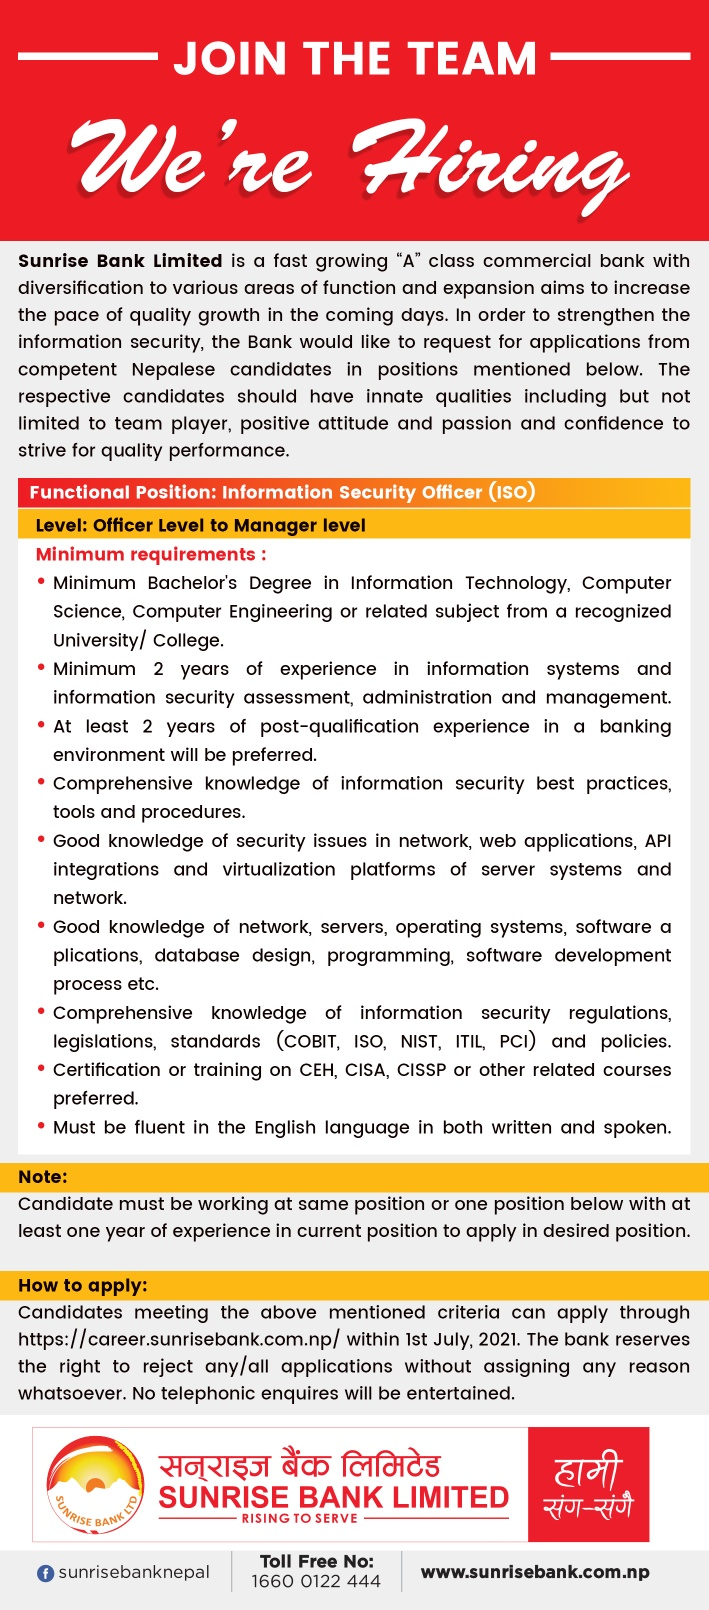 Sunrise Bank Limited Job Vacancy for Information Security Officer (ISO)